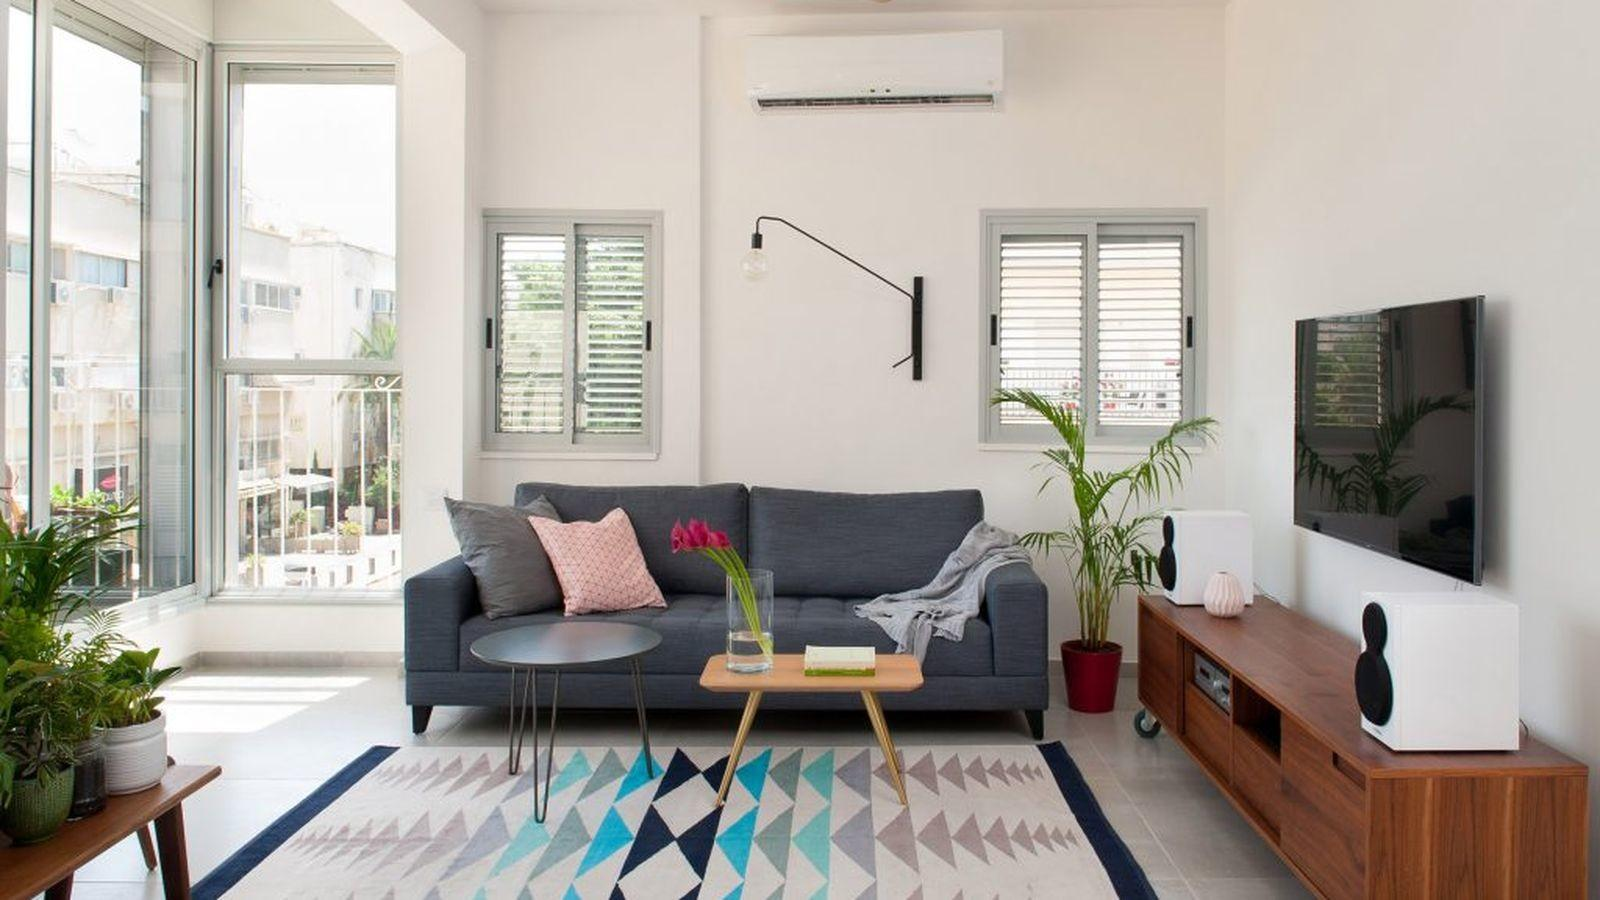 40s Flat Revamped Into Bright 700 Square Foot Family